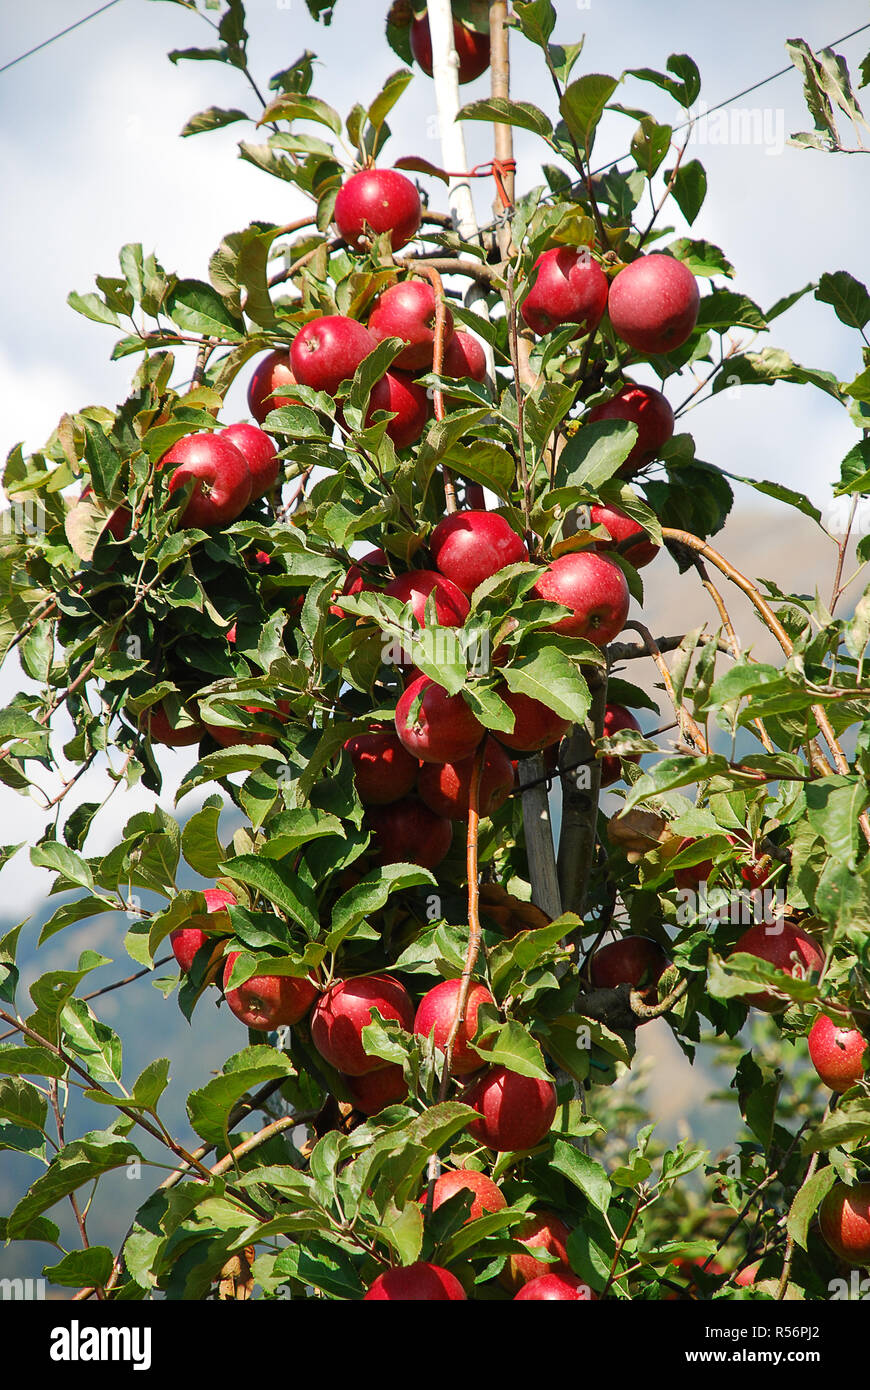 Bunch of red Gala apples on a apple tree in South Tyrol, Italy. The province South Tyrol is a large producer of apples - Stock Image